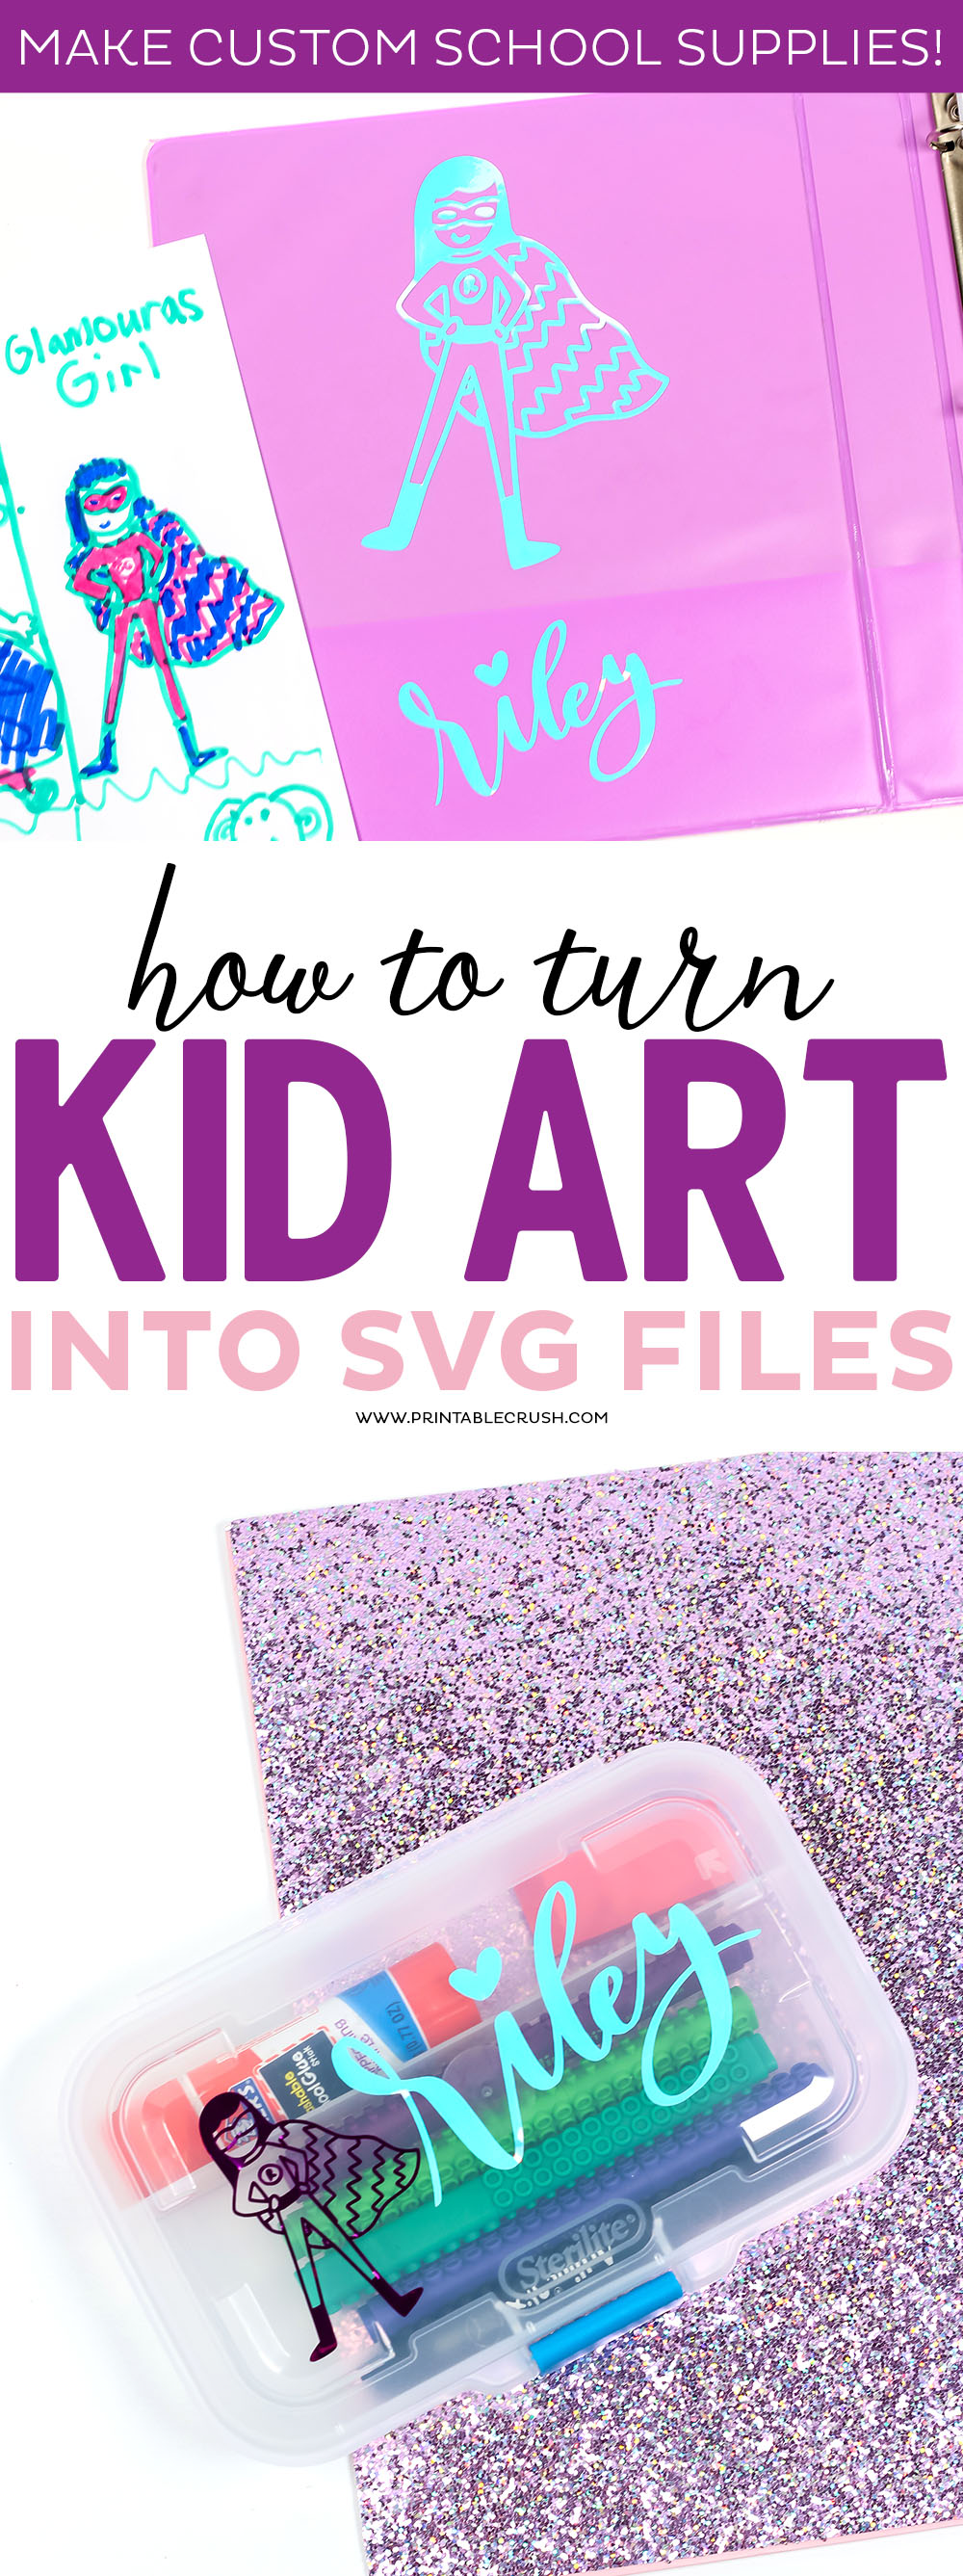 Learn how to Turn Kid Art into SVG Files with your Cricut Machine and vinyl! This is the perfect tutorial for creating customBack to School Supplies.